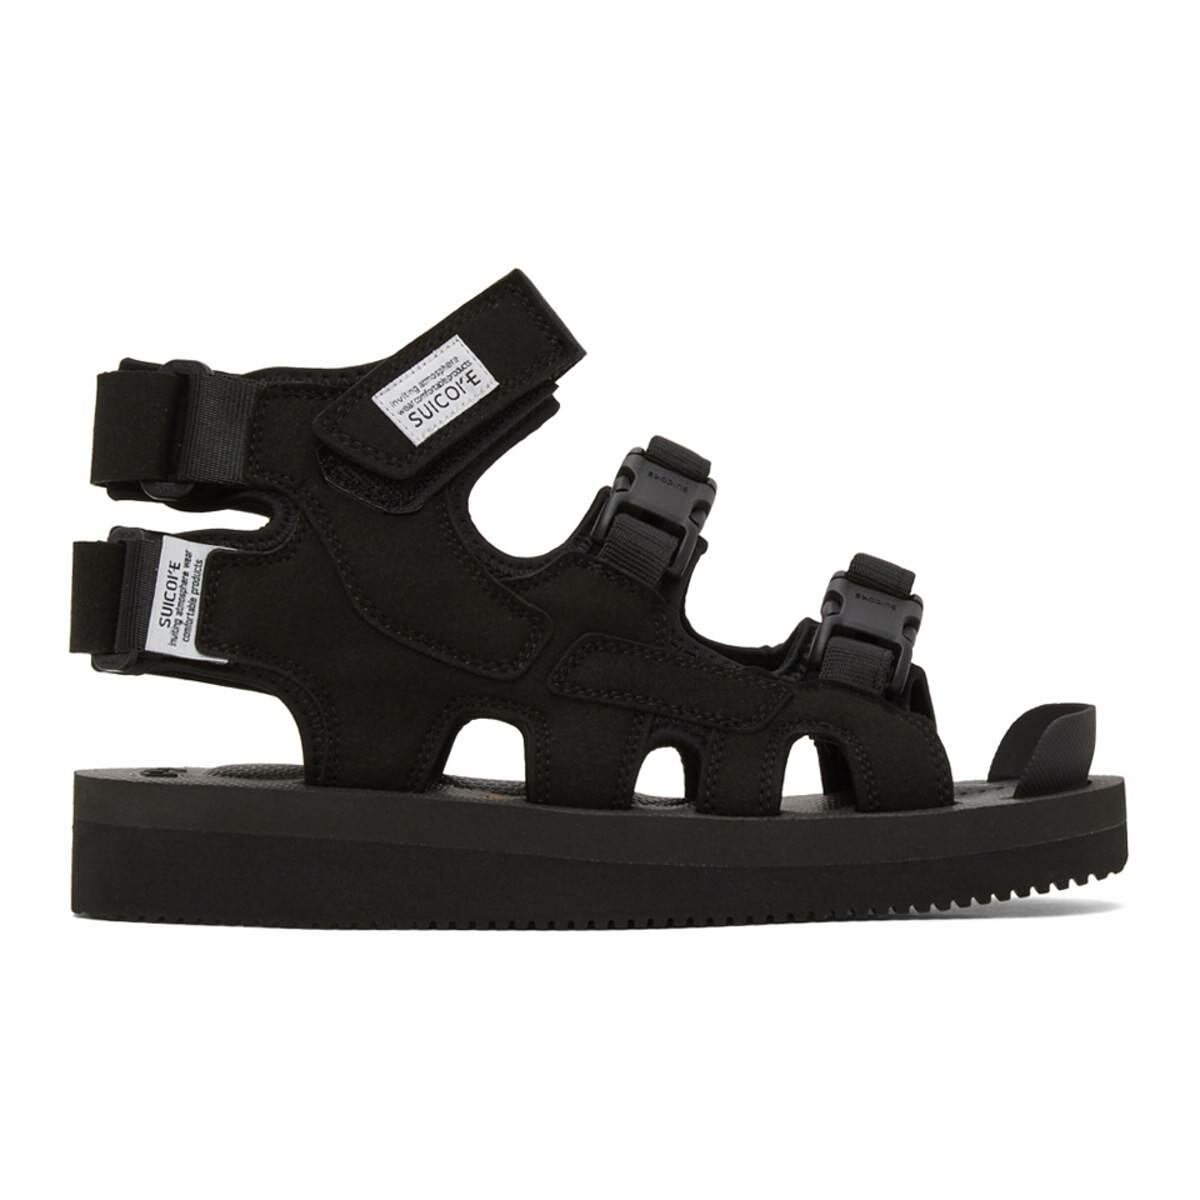 Suicoke Black Boak-V High Top Sandals Ssense USA MEN Men SHOES Mens SANDALS